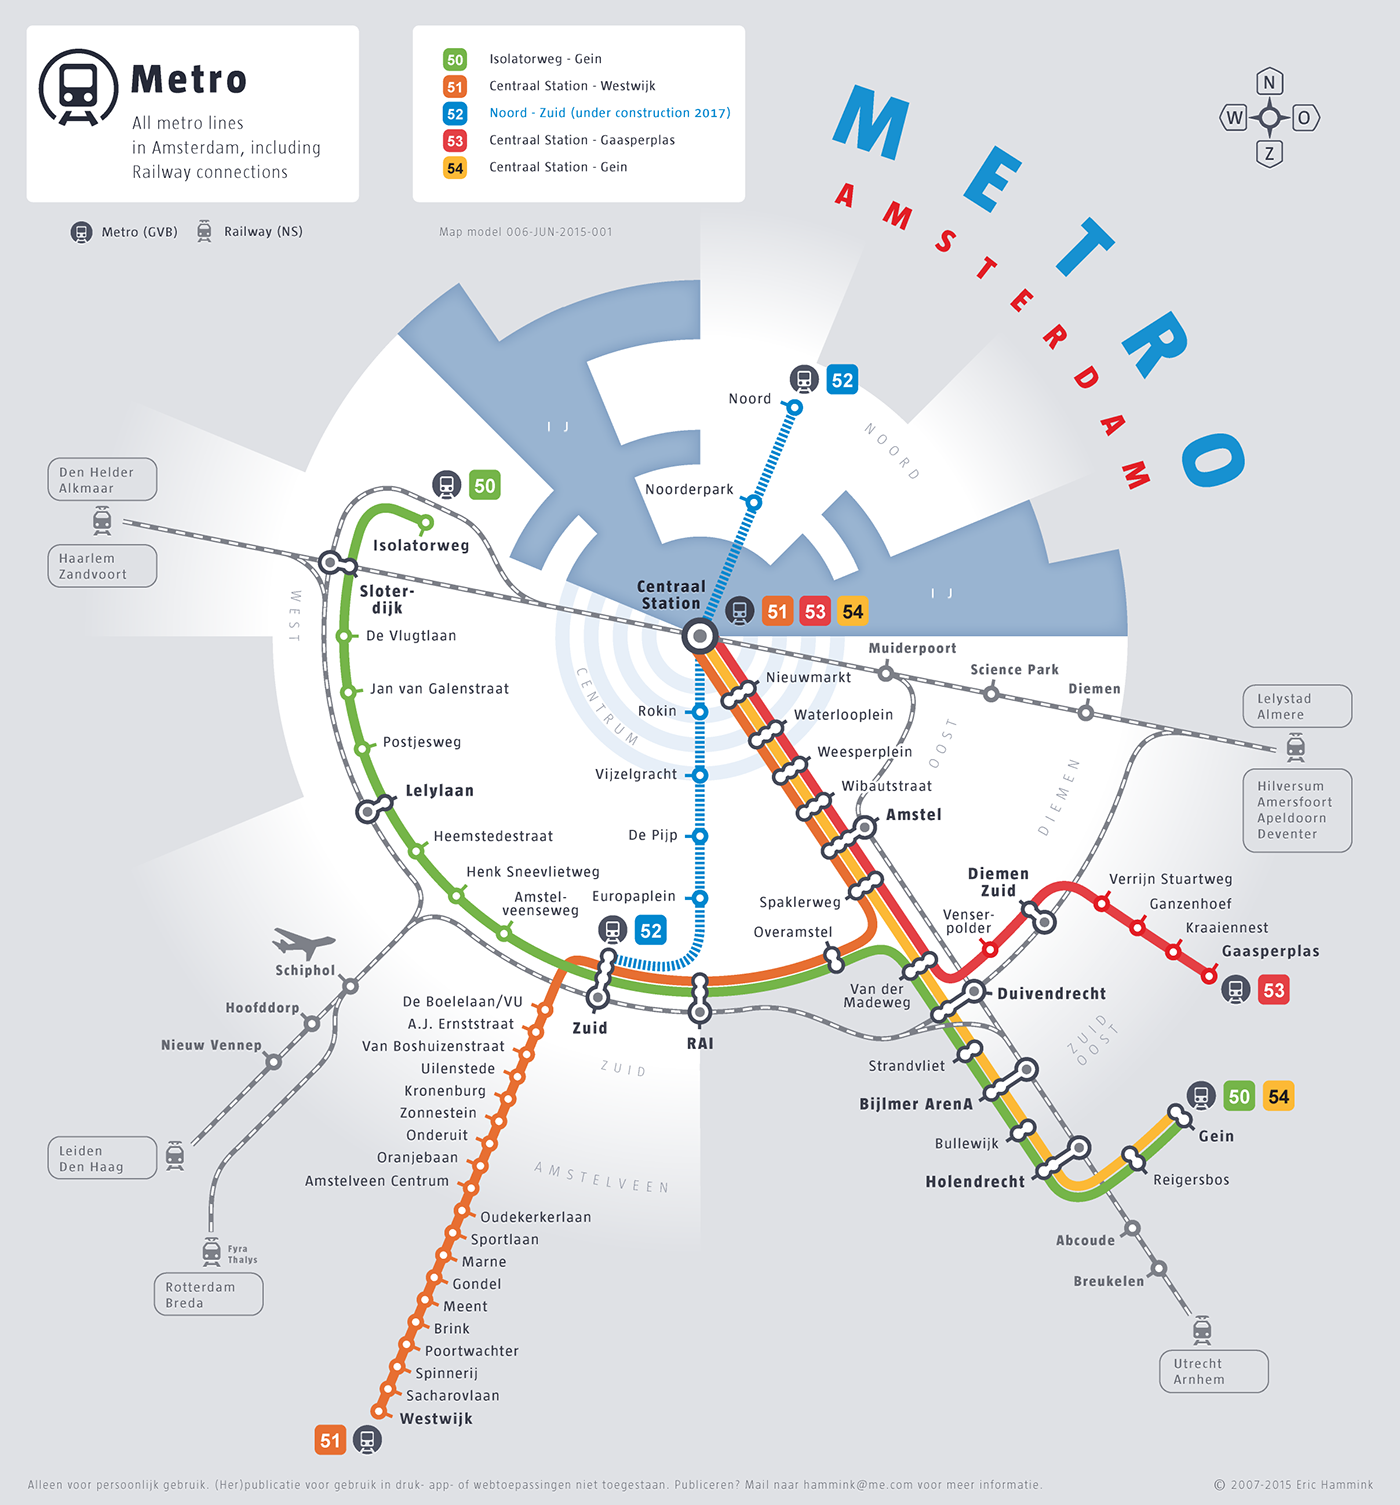 Metro Map Amsterdam on Behance